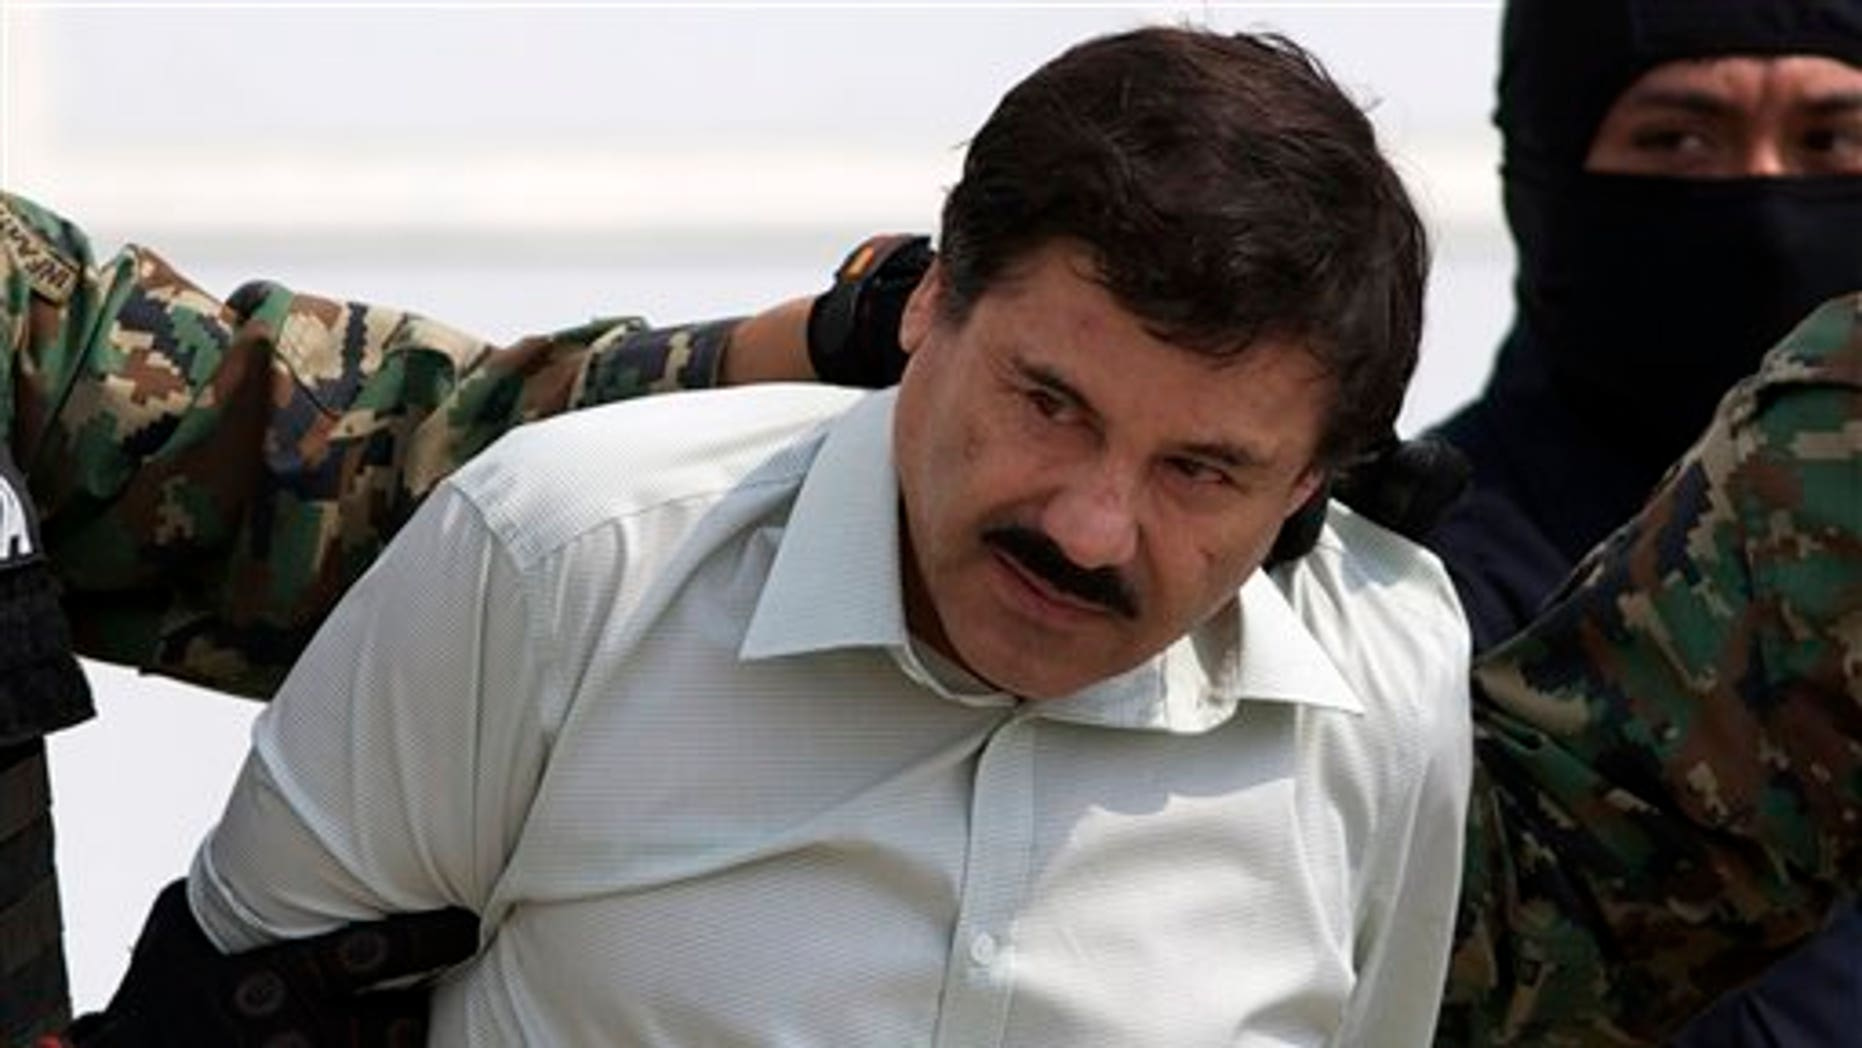 """Joaquin """"El Chapo"""" Guzman is escorted to a helicopter in handcuffs by Mexican navy marines at a navy hanger in Mexico City, Saturday, Feb. 22, 2014. A senior U.S. law enforcement official said Saturday, that Guzman, the head of Mexicoís Sinaloa Cartel, was captured alive overnight in the beach resort town of Mazatlan. Guzman faces multiple federal drug trafficking indictments in the U.S. and is on the Drug Enforcement Administrationís most-wanted list. (AP Photo/Eduardo Verdugo)"""